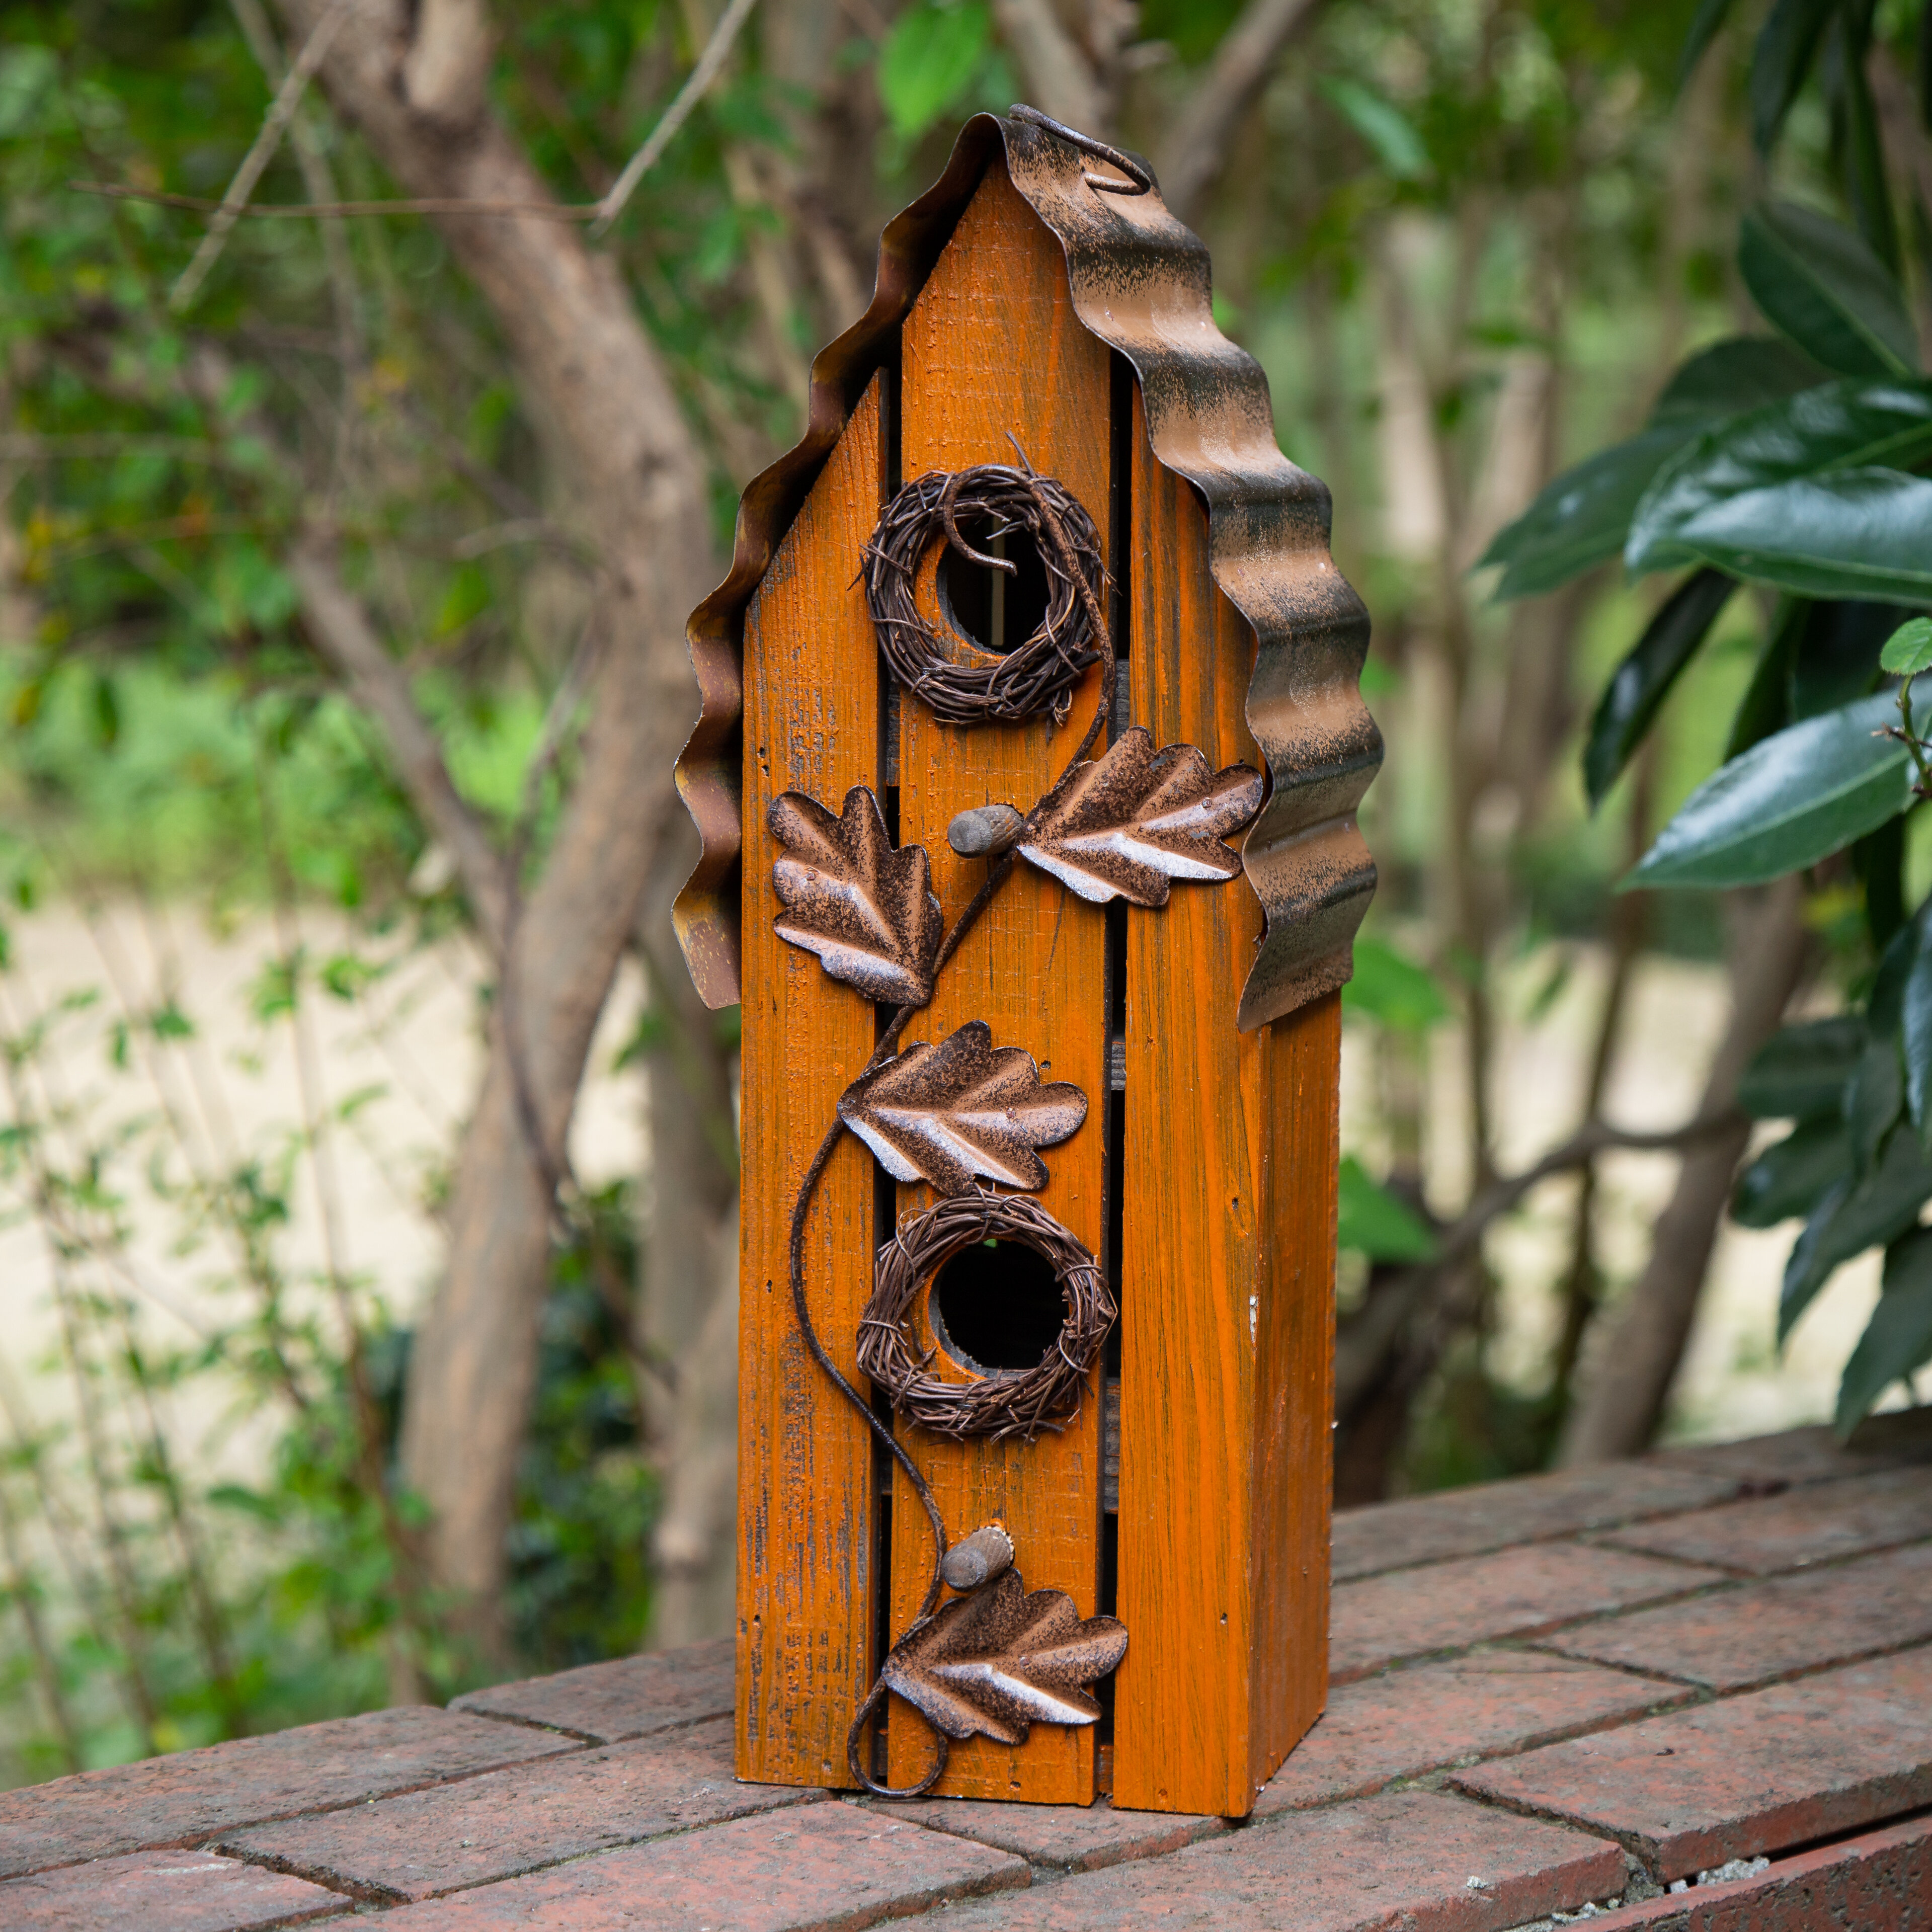 Glitzhome 14 In X 5 In X 5 In Birdhouse Reviews Wayfair